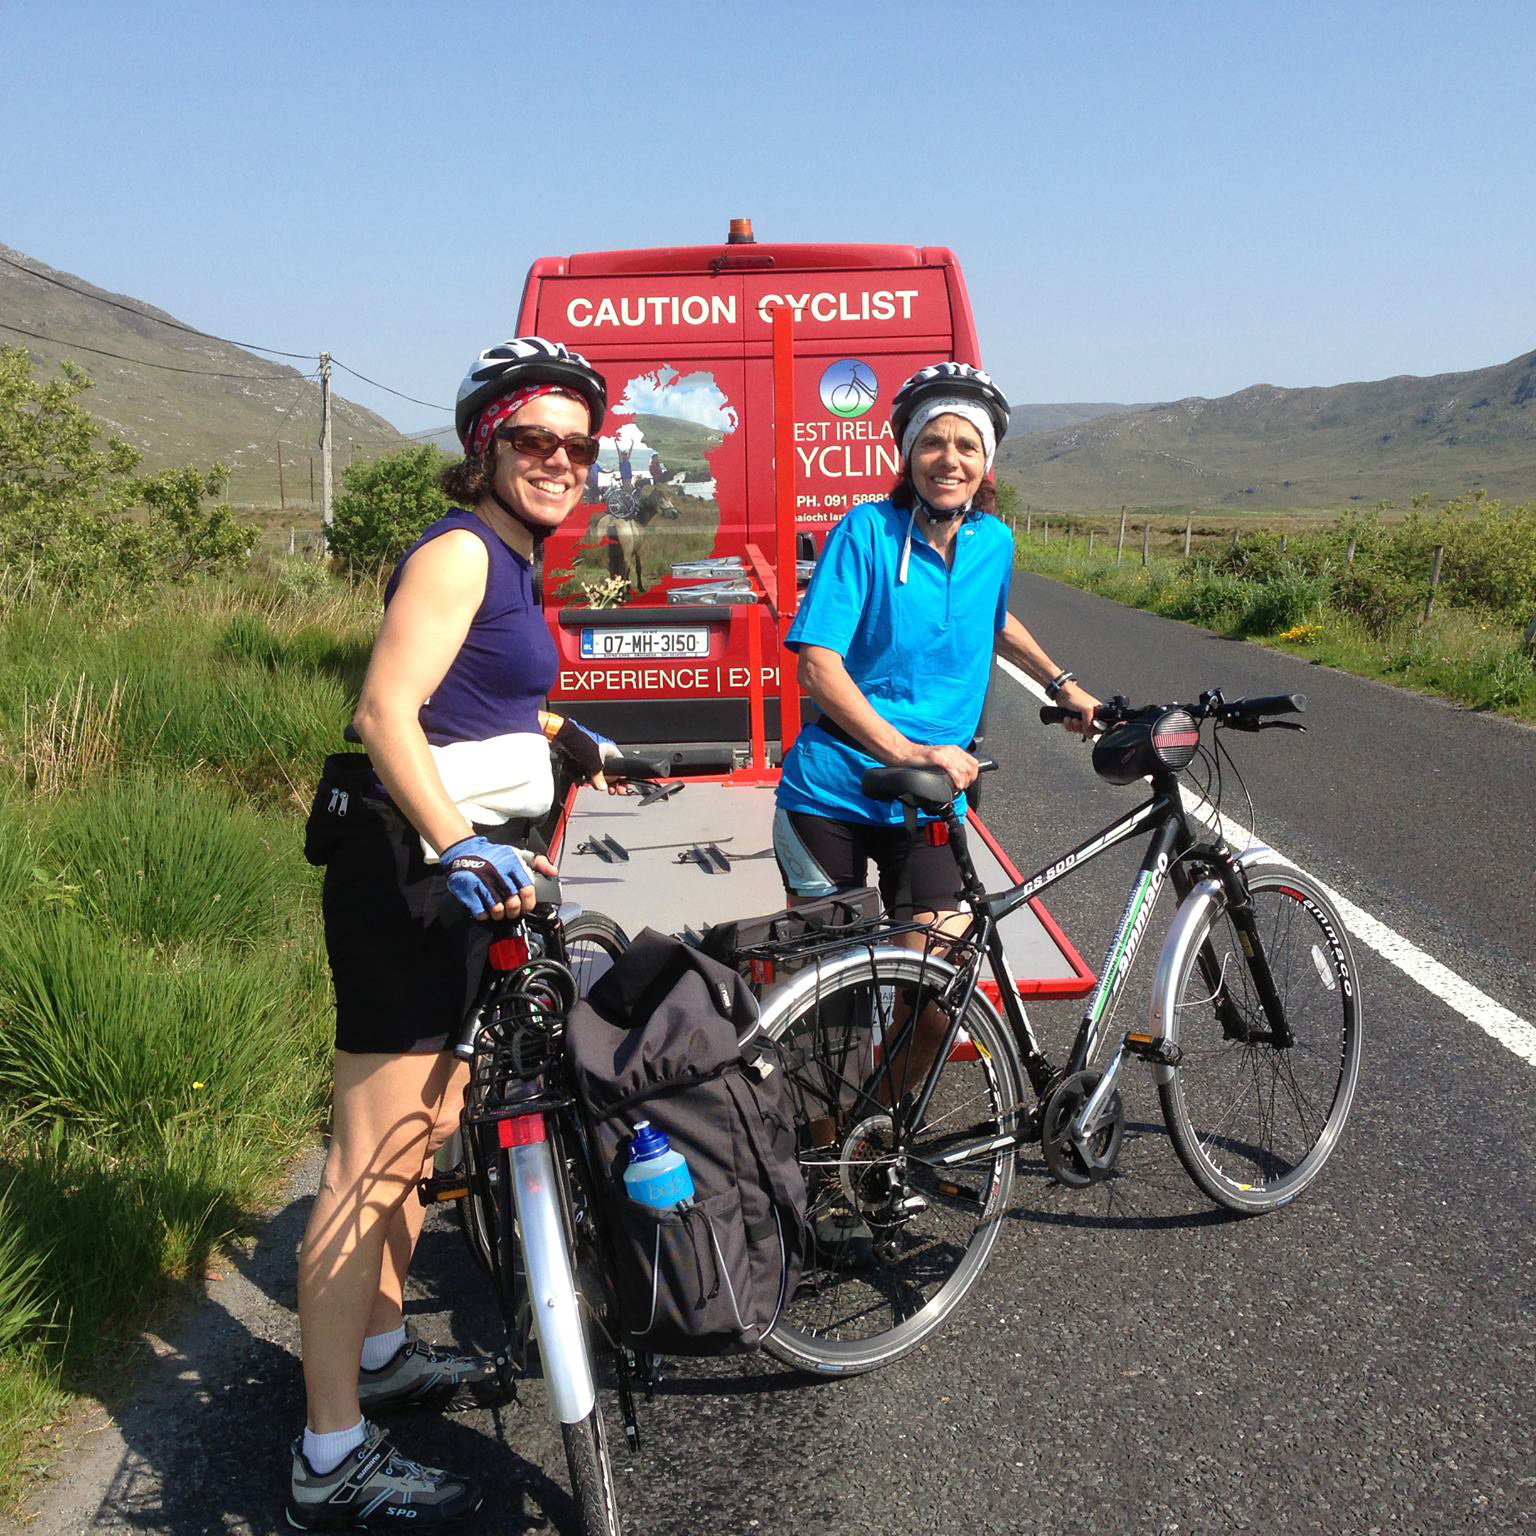 We provide cycling tours and high quality bike and equipment hire in Ireland